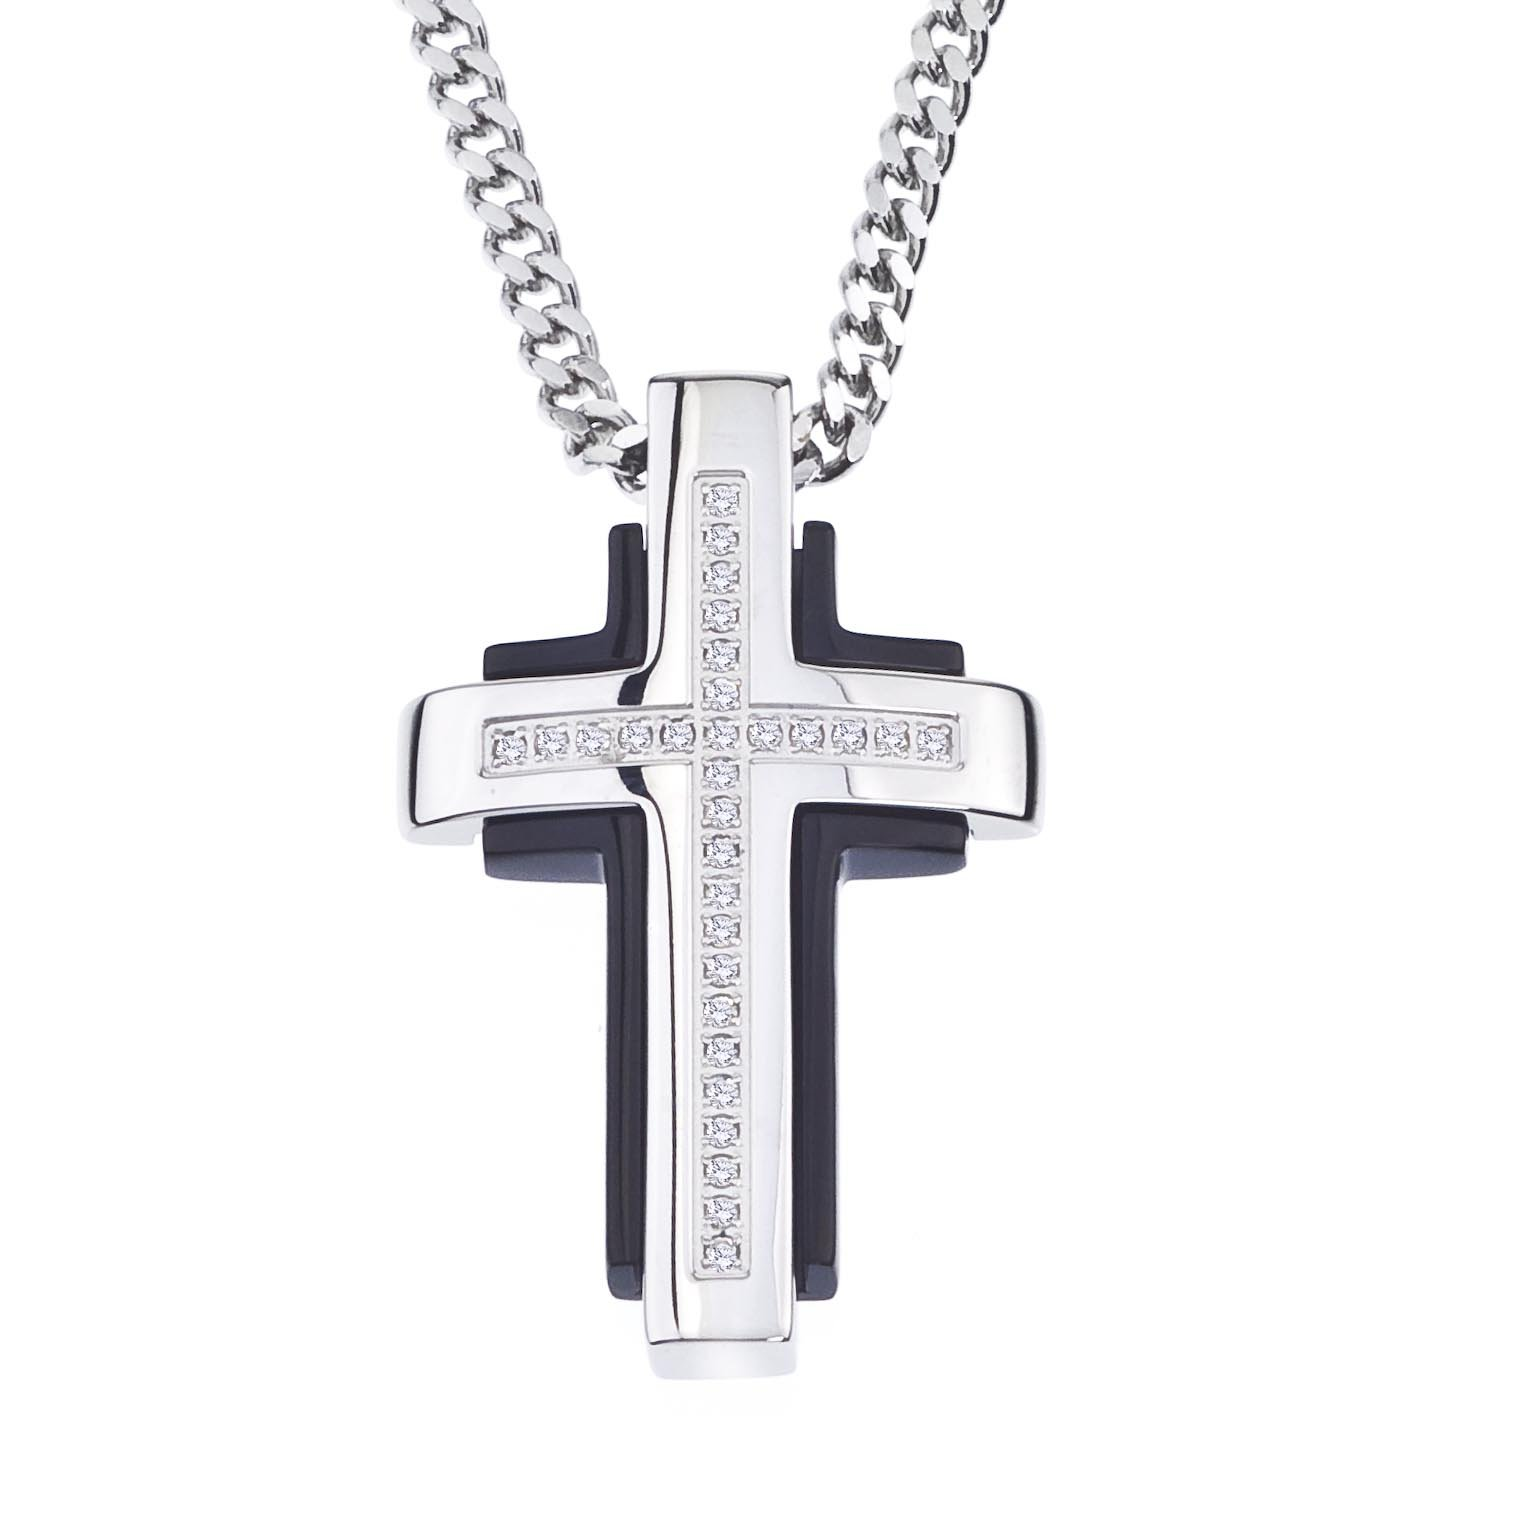 Diamond Cross Pendant in Stainless Steel (0.15 carats) by AX Jewelry